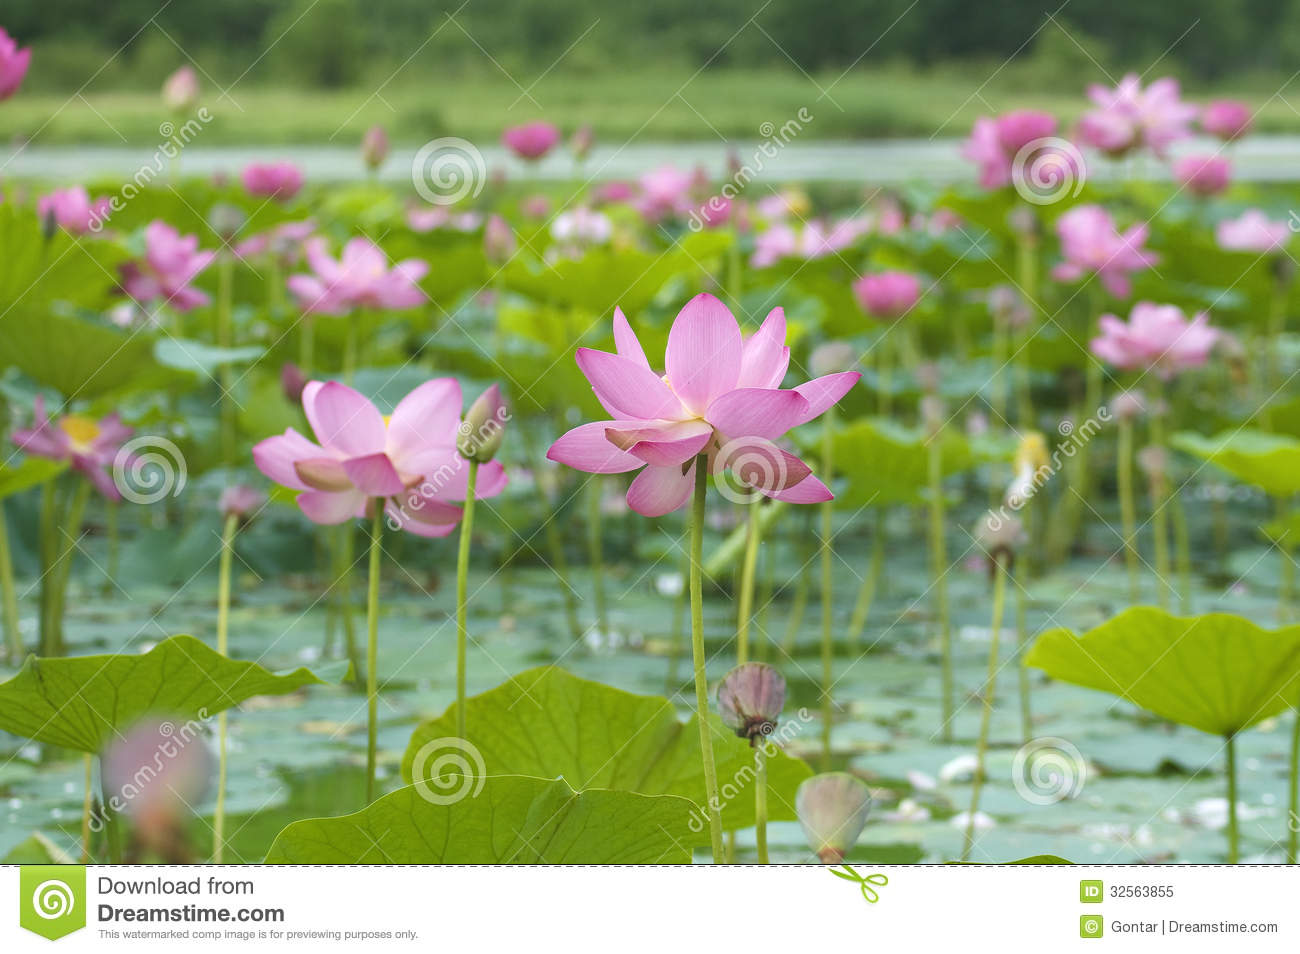 lotus blossoms royalty free stock photo  image, Beautiful flower